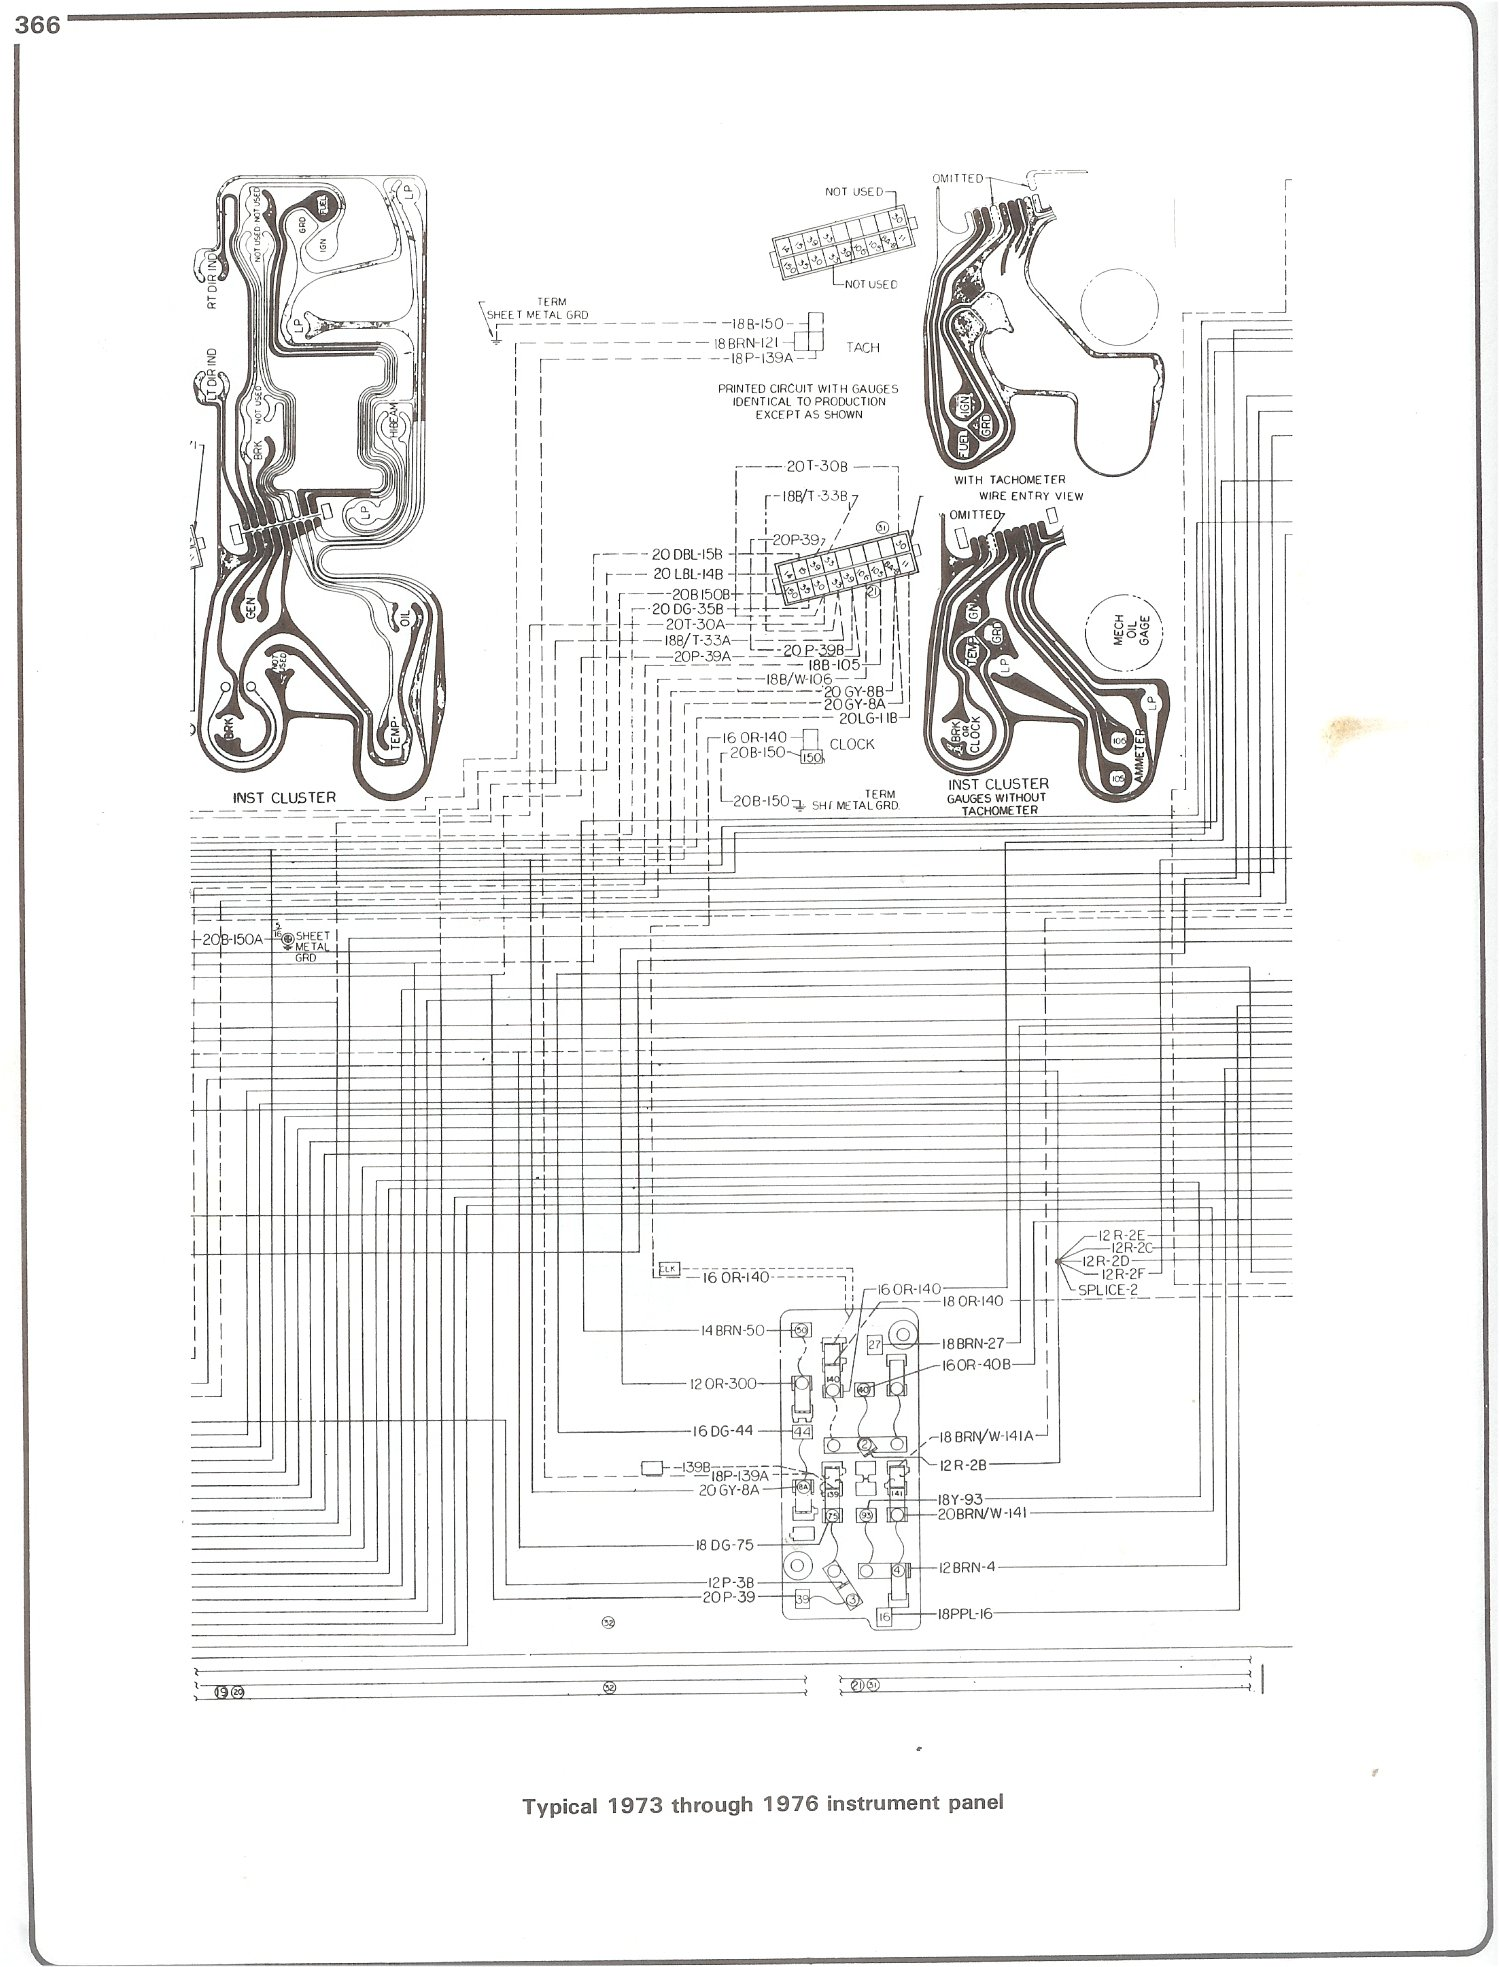 85 k5 blazer wiring diagram trusted wiring diagrams u2022 rh sivamuni com